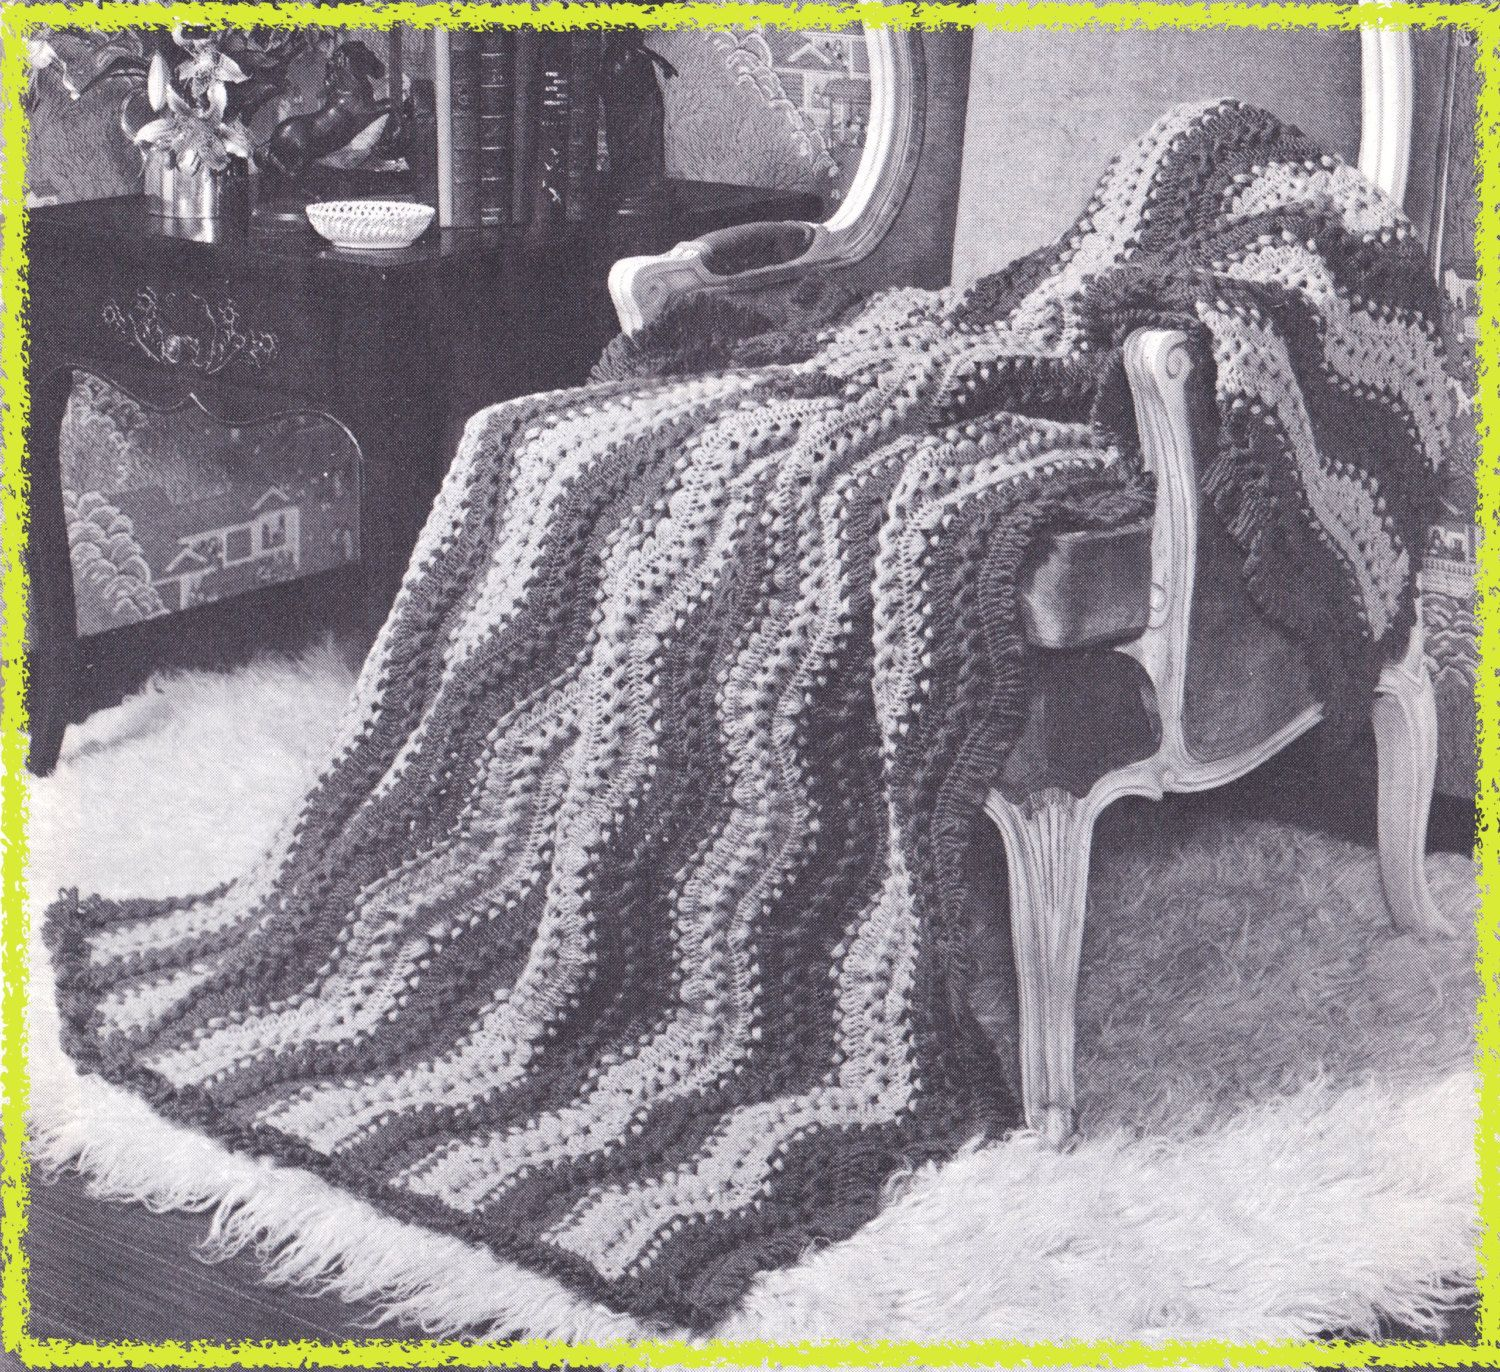 577 wavy afghan crochet pattern hairpin lace stitch pattern 577 wavy afghan crochet pattern hairpin lace stitch pattern couch throw chevron design blanket pdf download vintage 1950s free pattern bankloansurffo Image collections